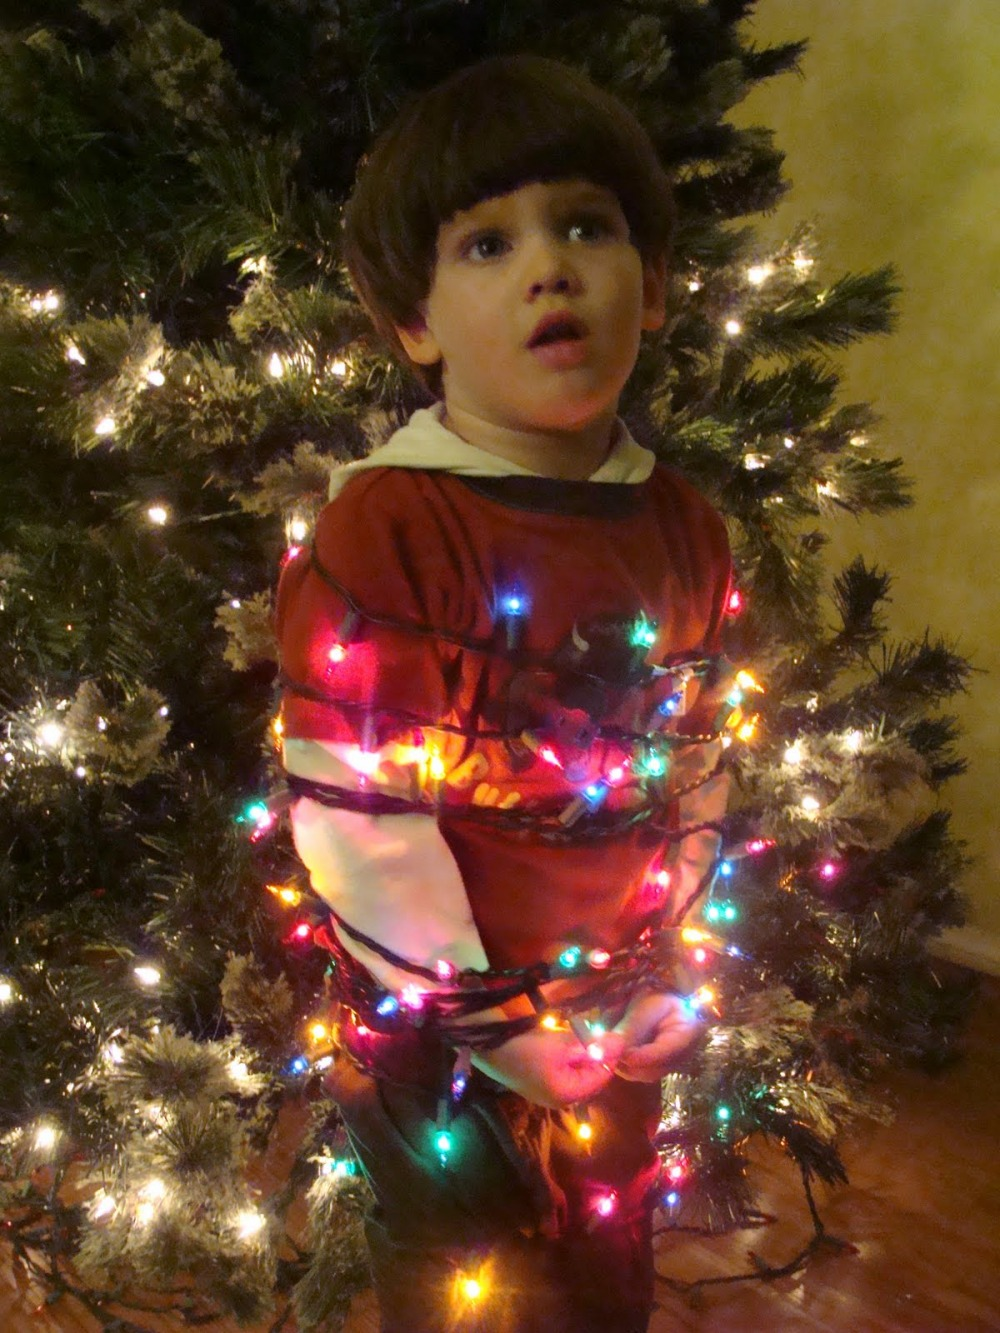 boy-wrapped-lights-awkward-holiday-photos